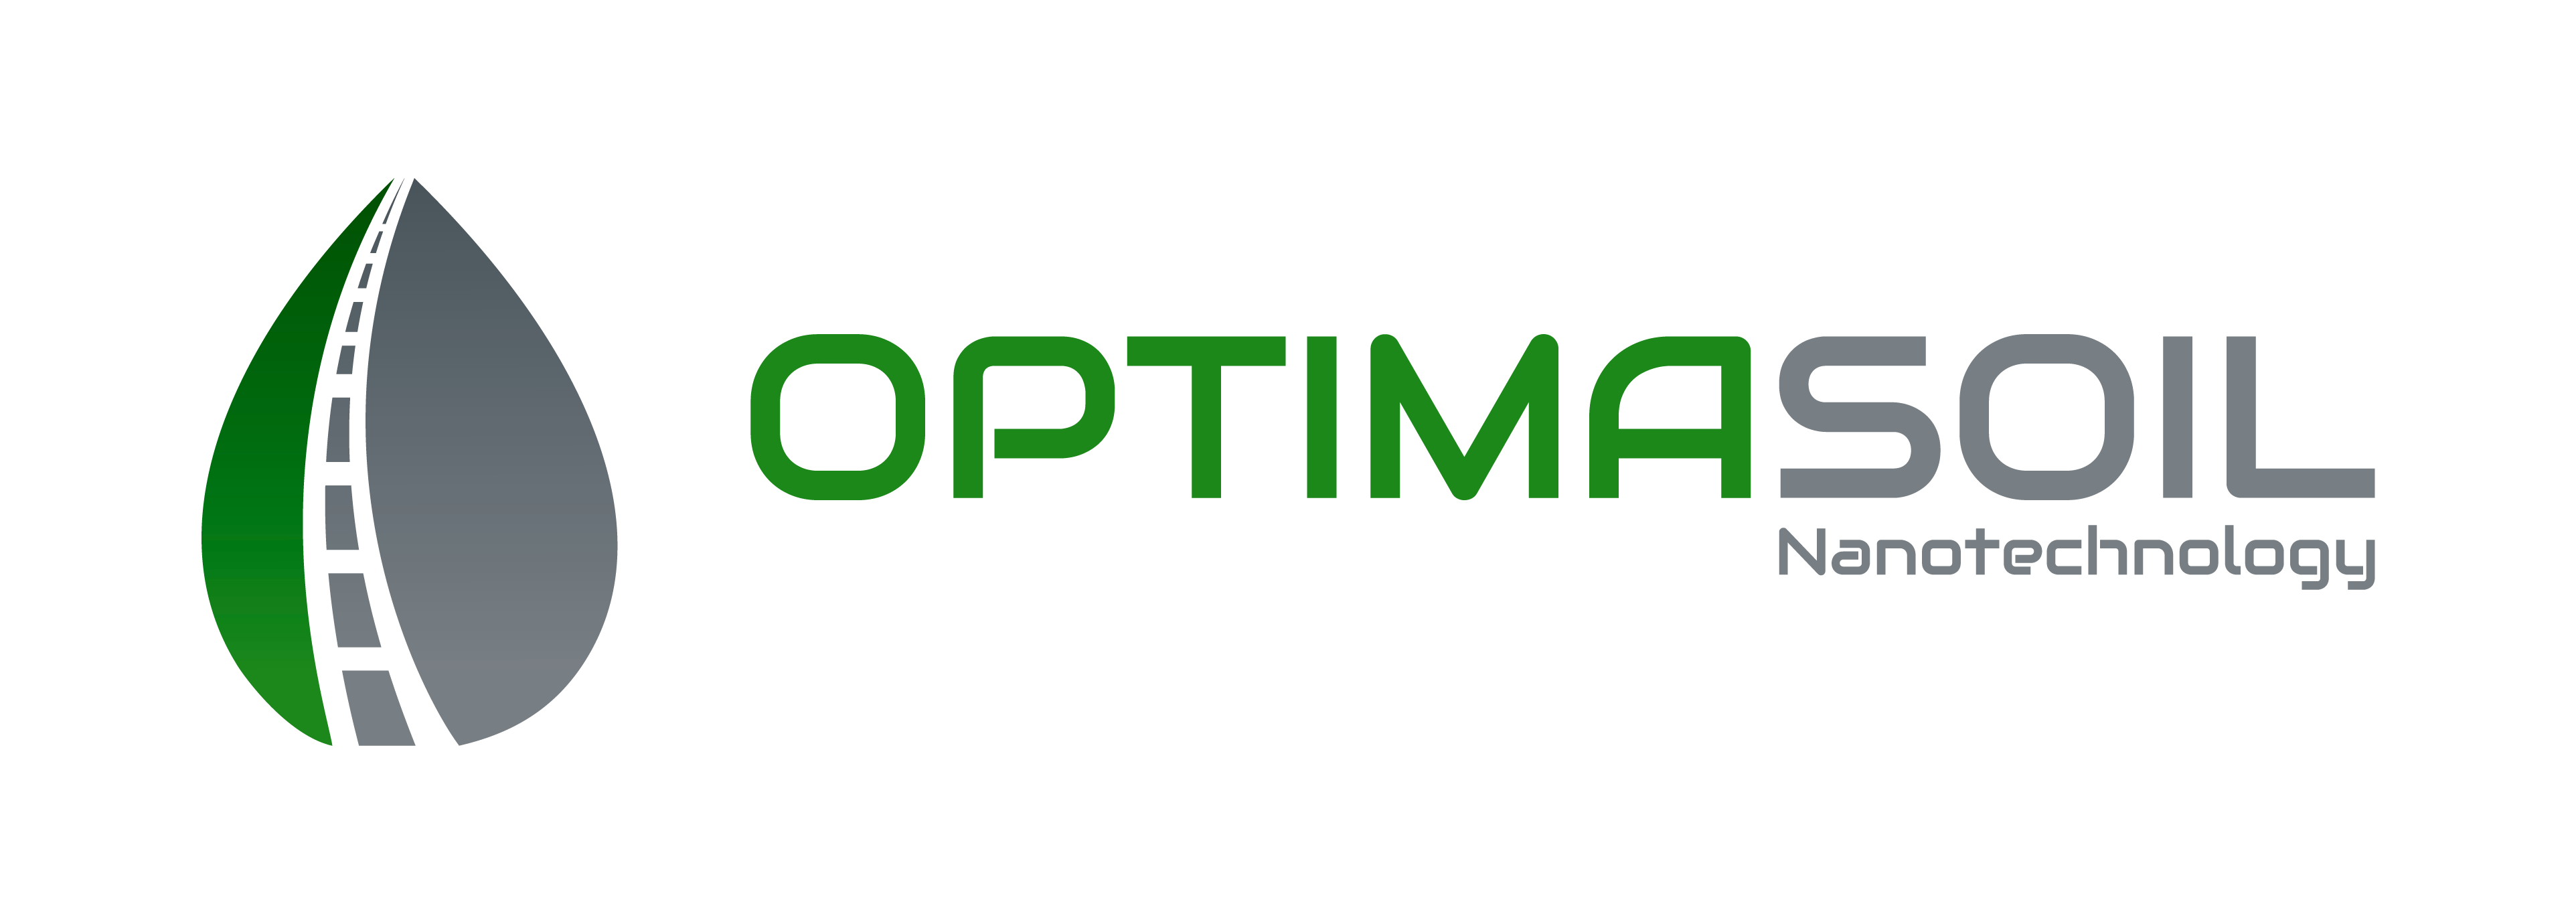 OPTIMASOIL